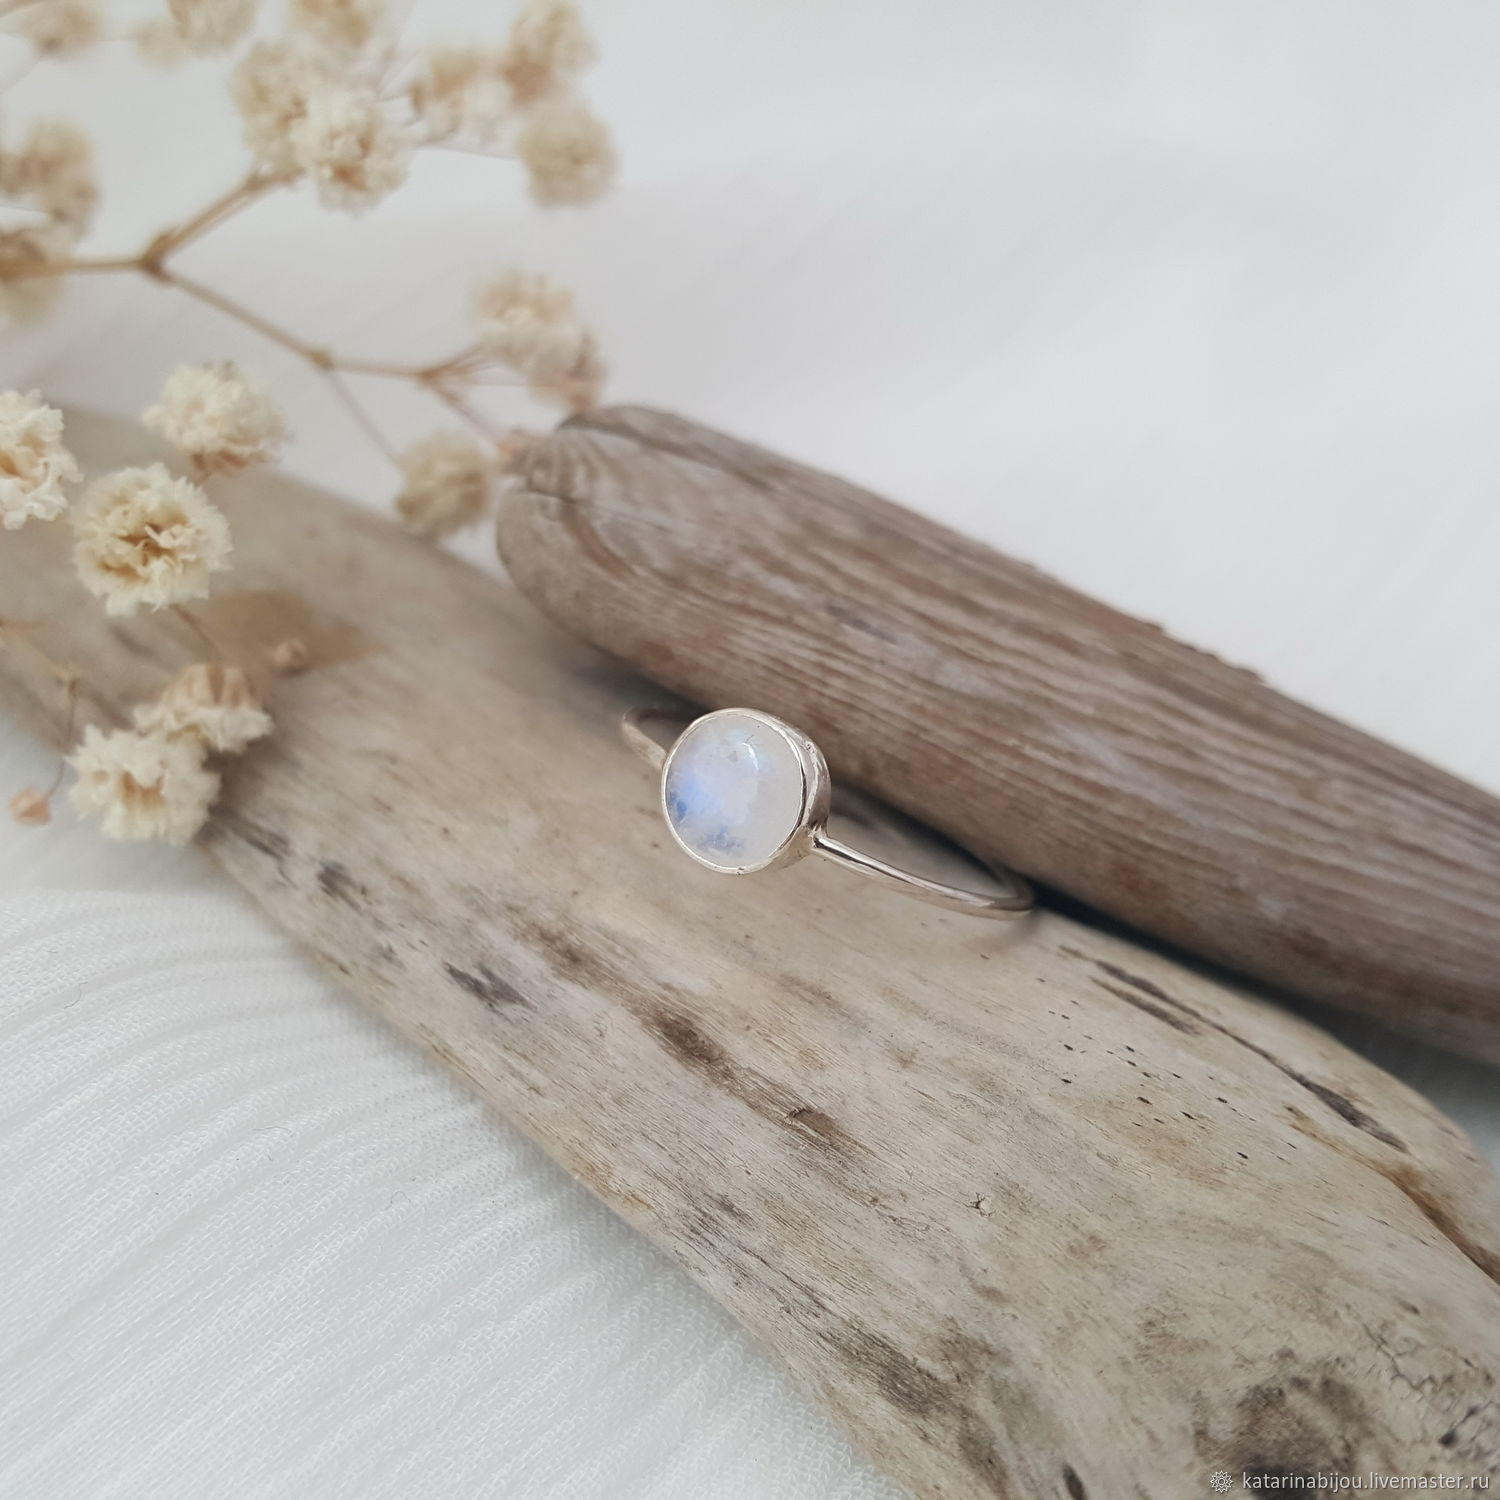 Silver Ring with moonstone, Rings, St. Petersburg,  Фото №1